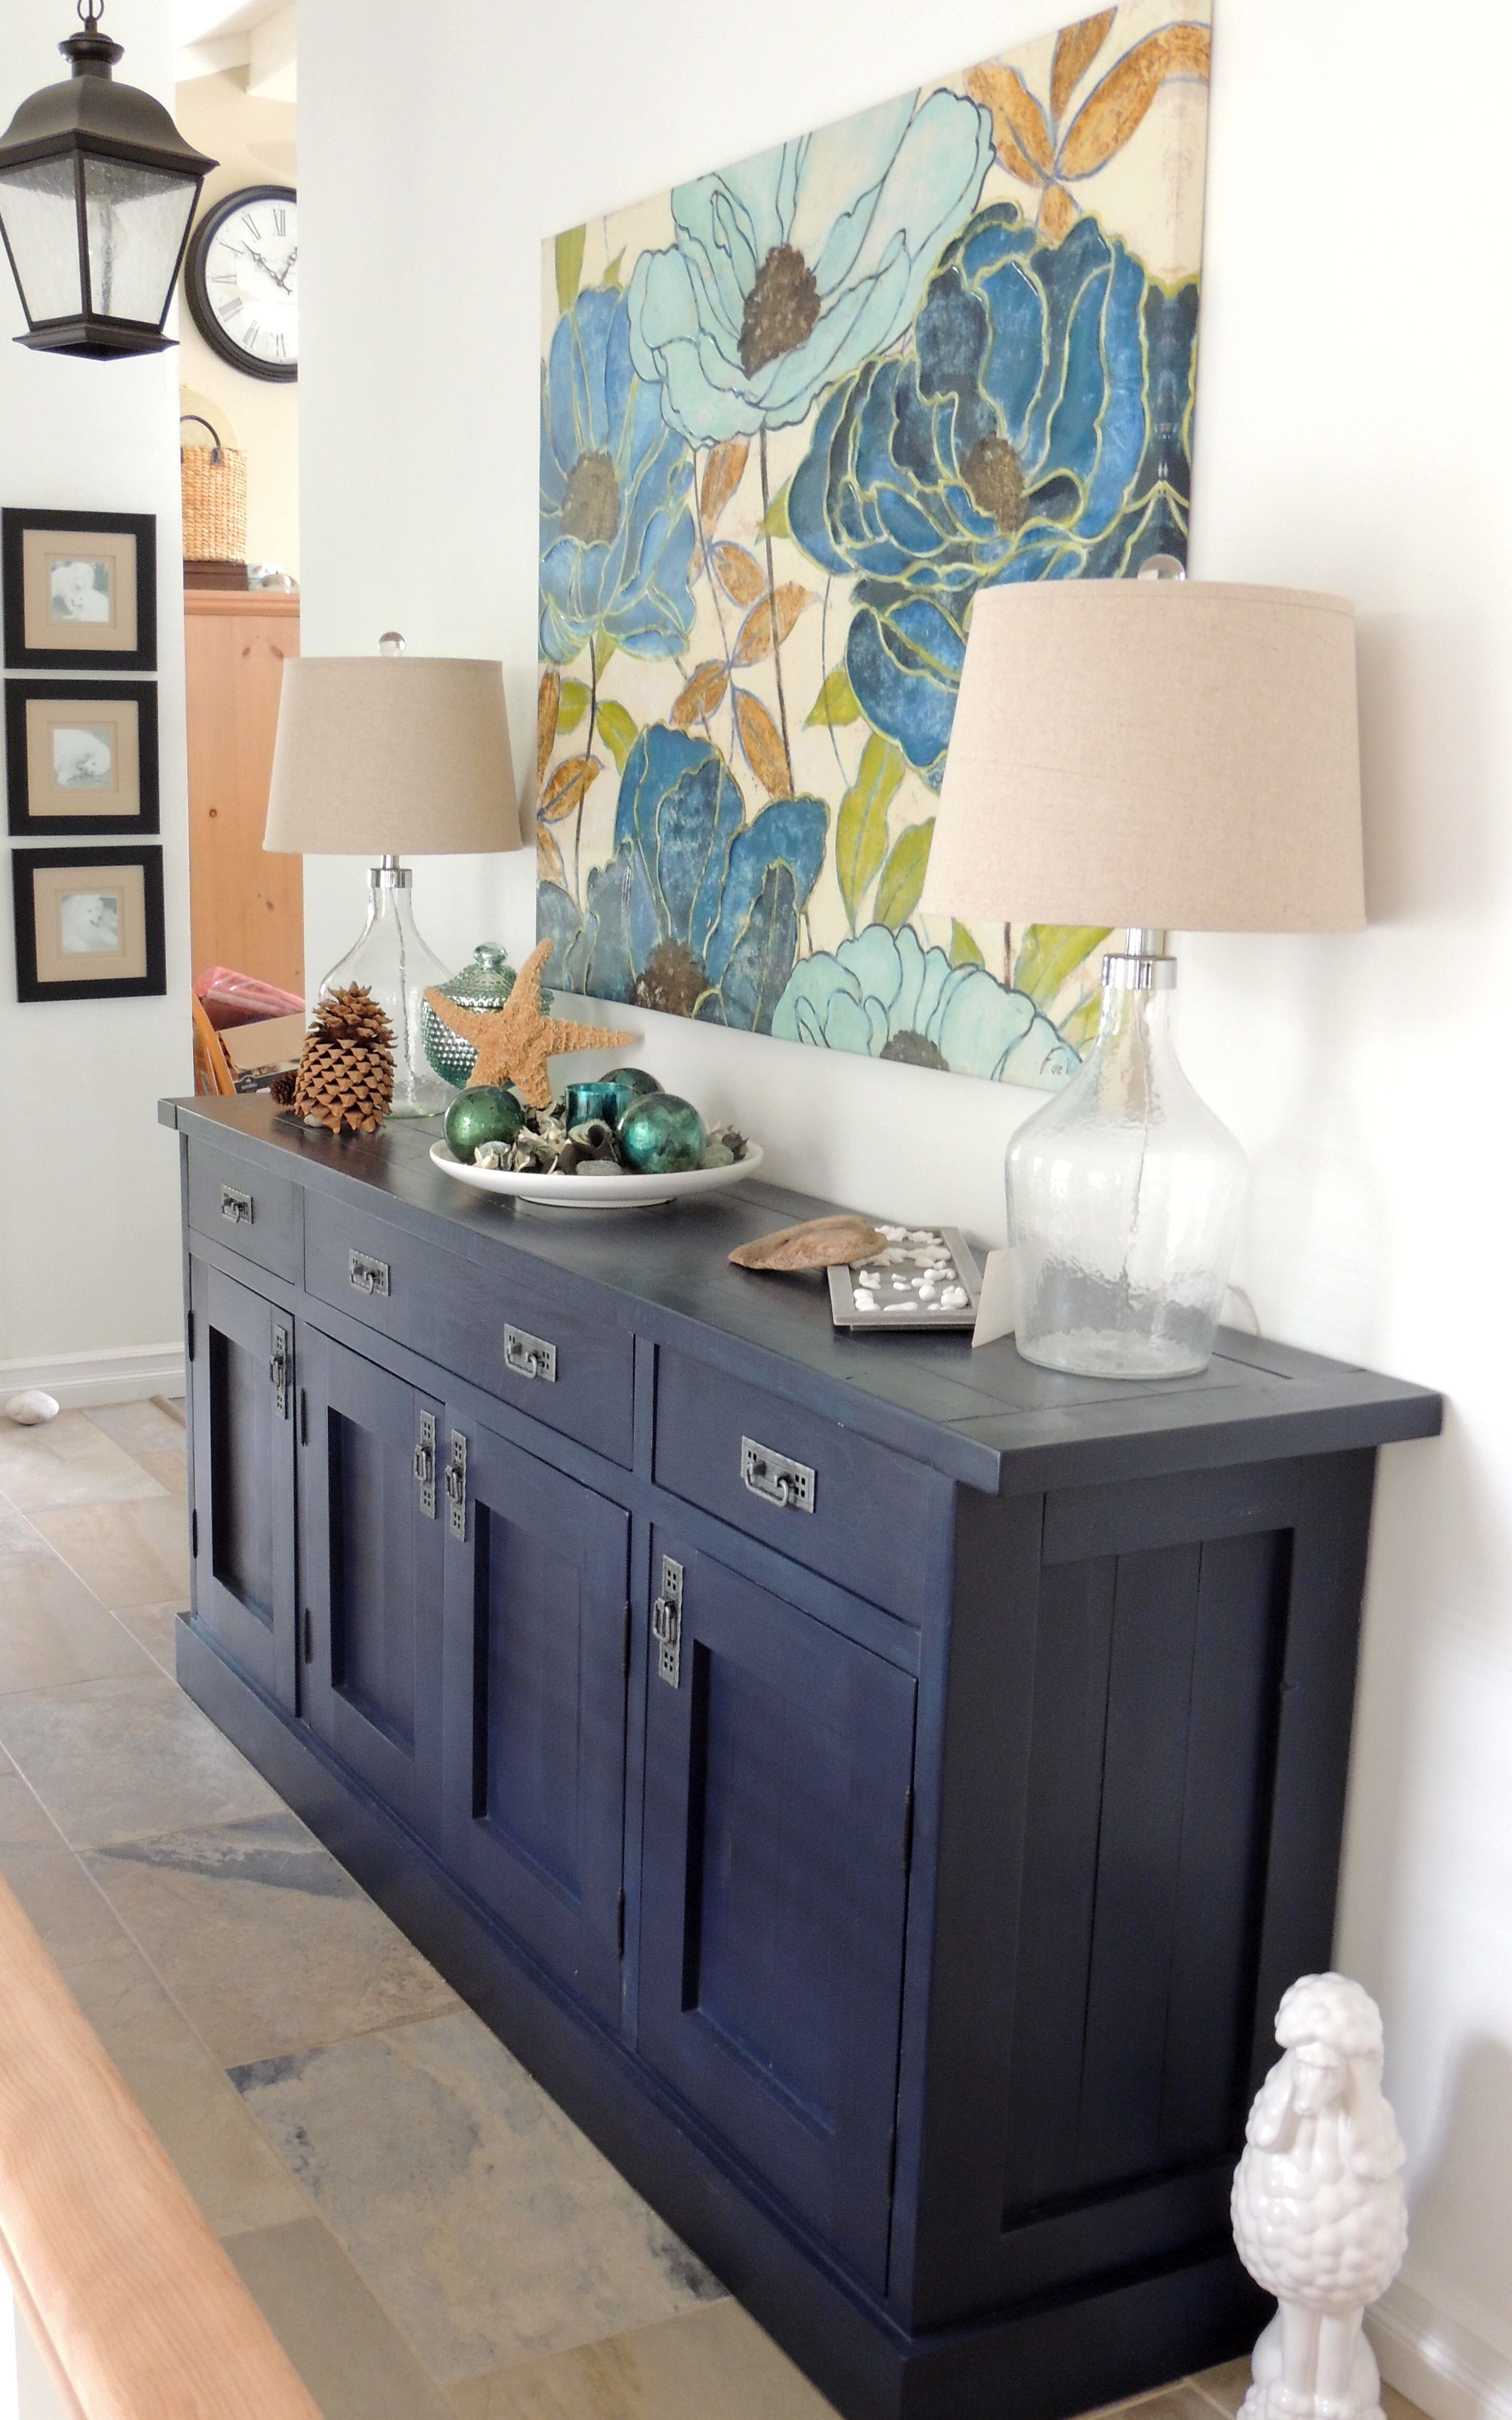 Kitchen Cabinet Buffet Ideas Gigantic Planked Sideboard | Do It Yourself Home Projects